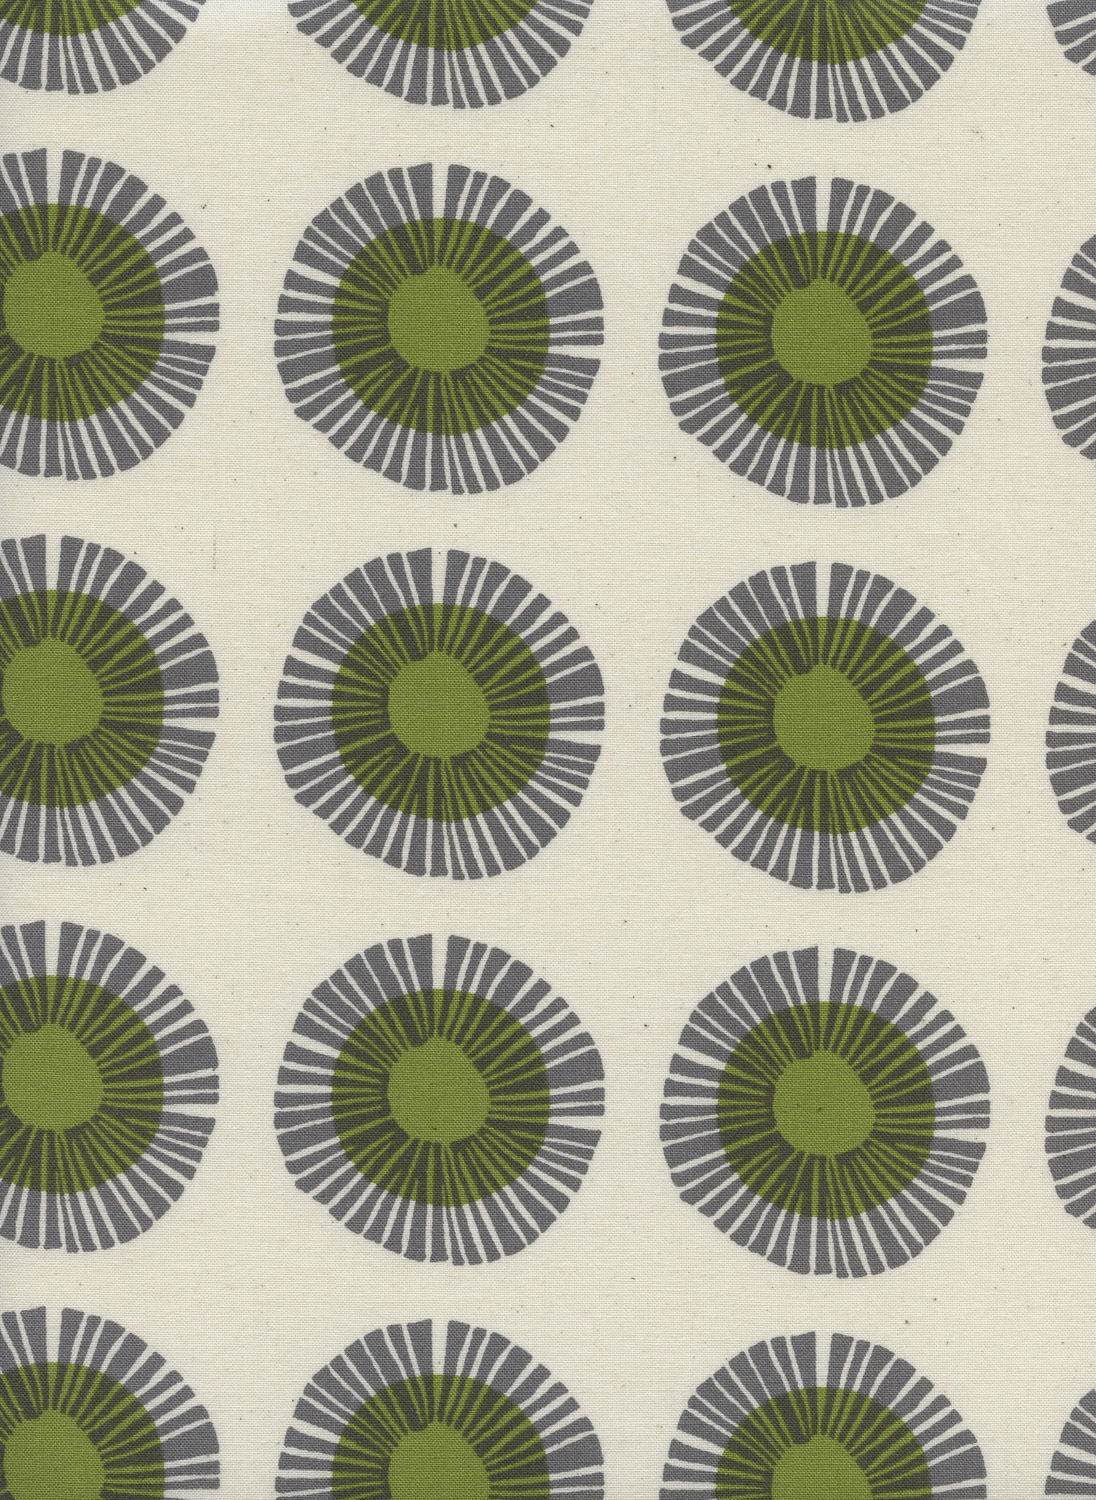 Seaside Daisy in Sage Unbleached by Jen Hewitt from the Imagined Landscapes collection for Cotton and Steel #J9014-002